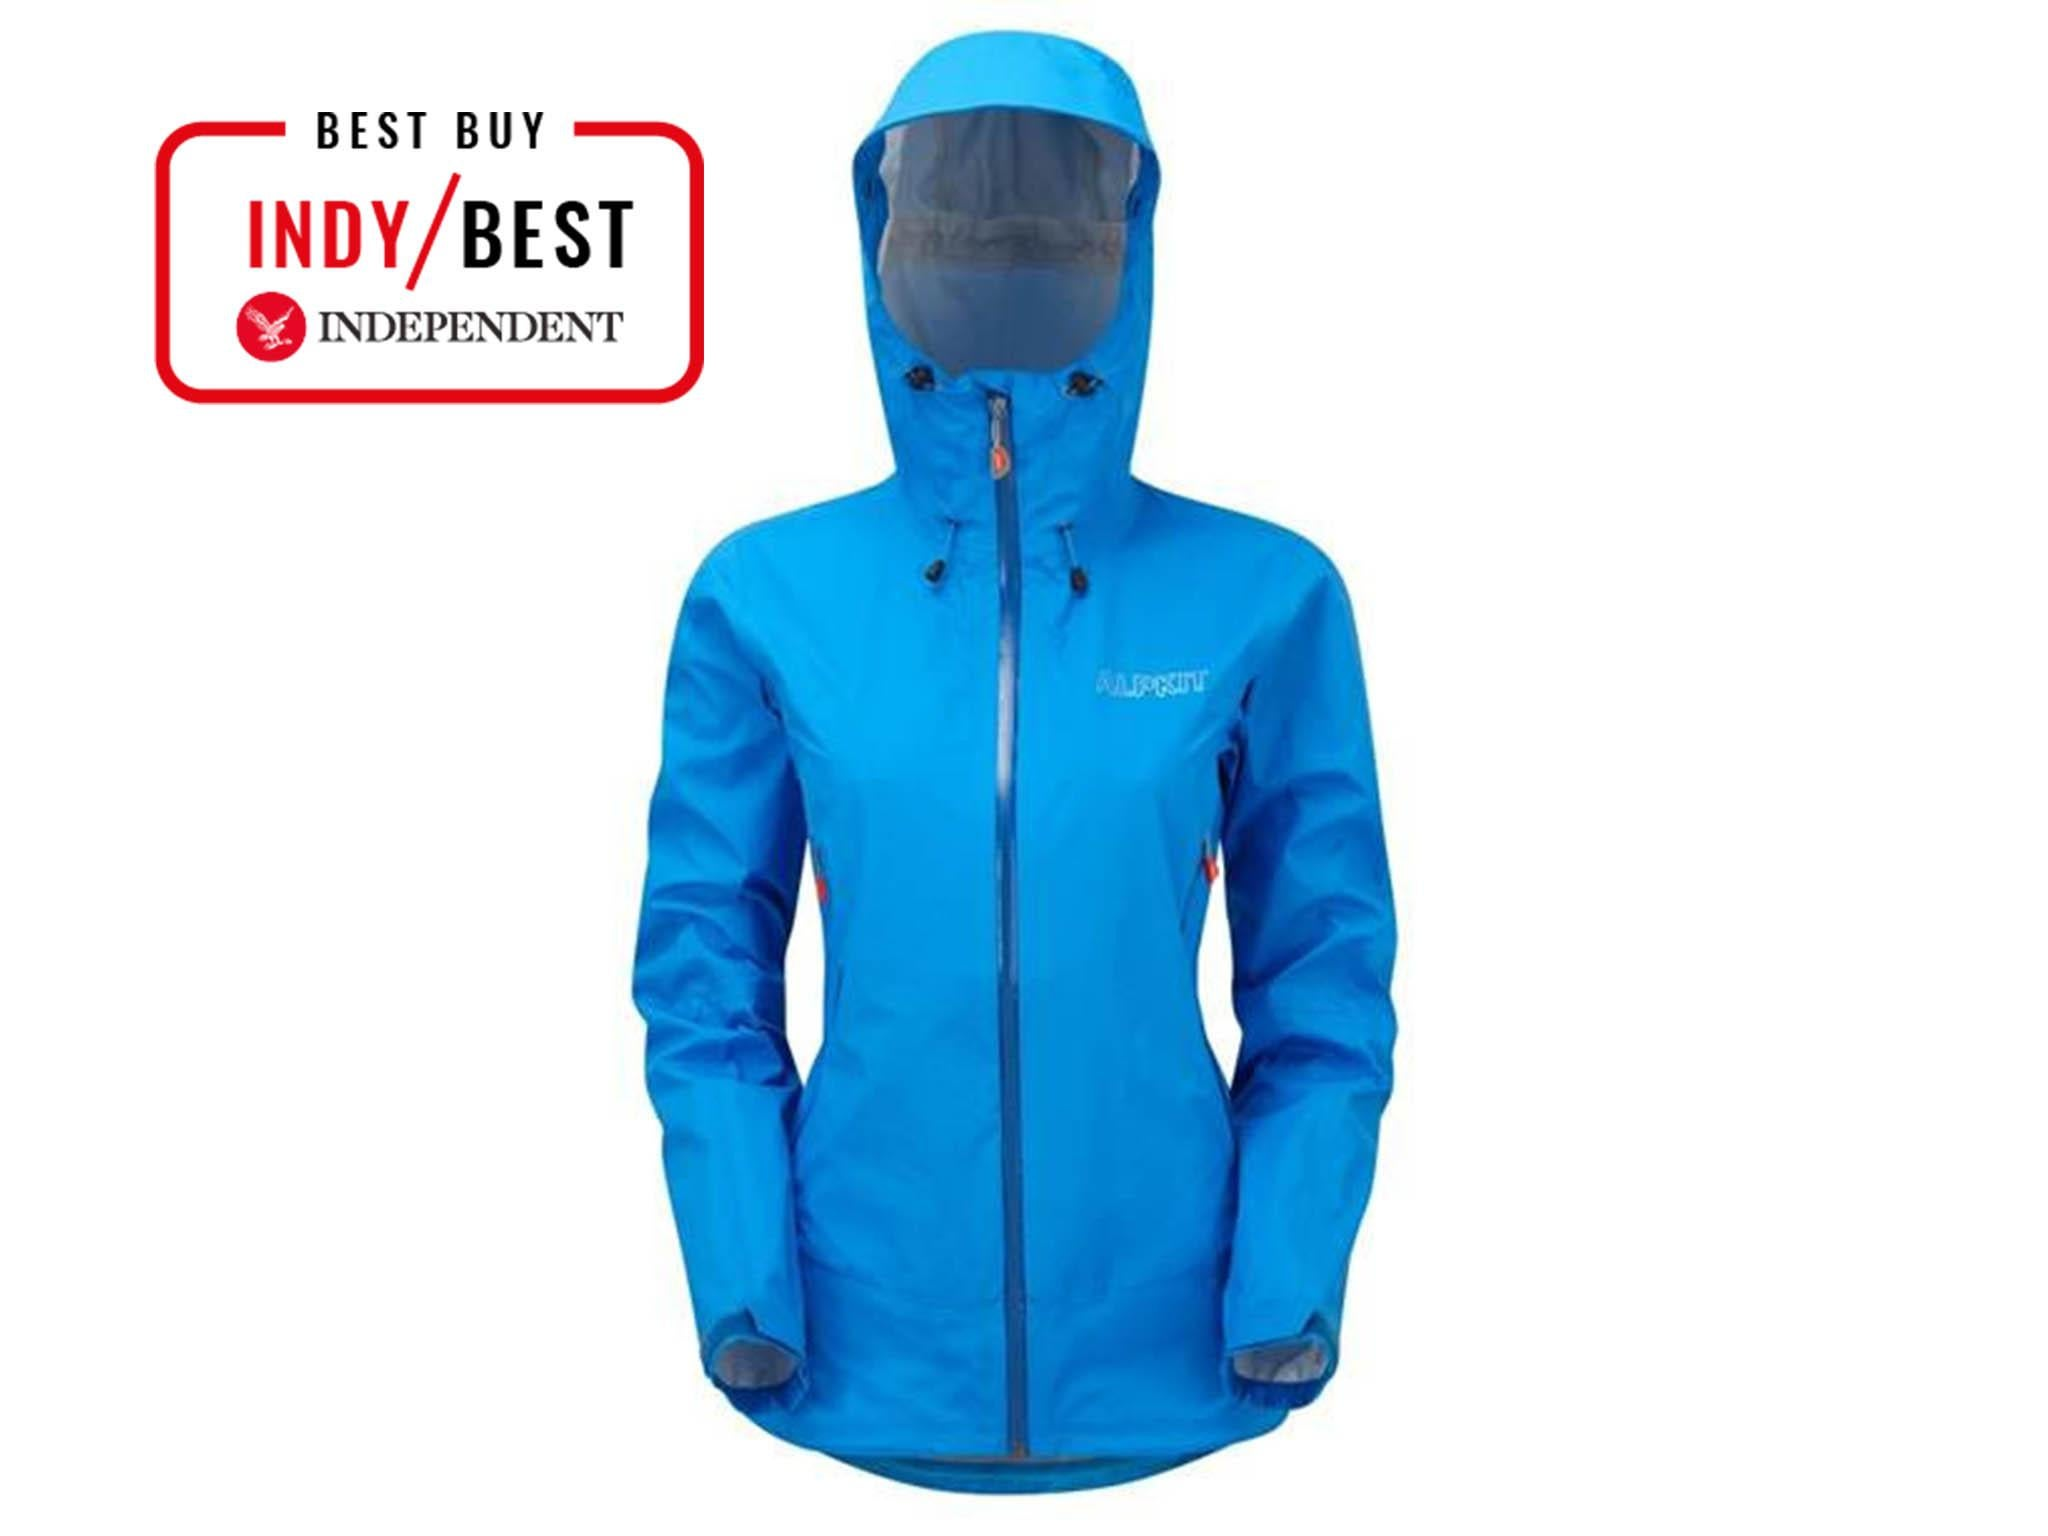 d1272e5cf 11 best waterproof jackets for women | The Independent